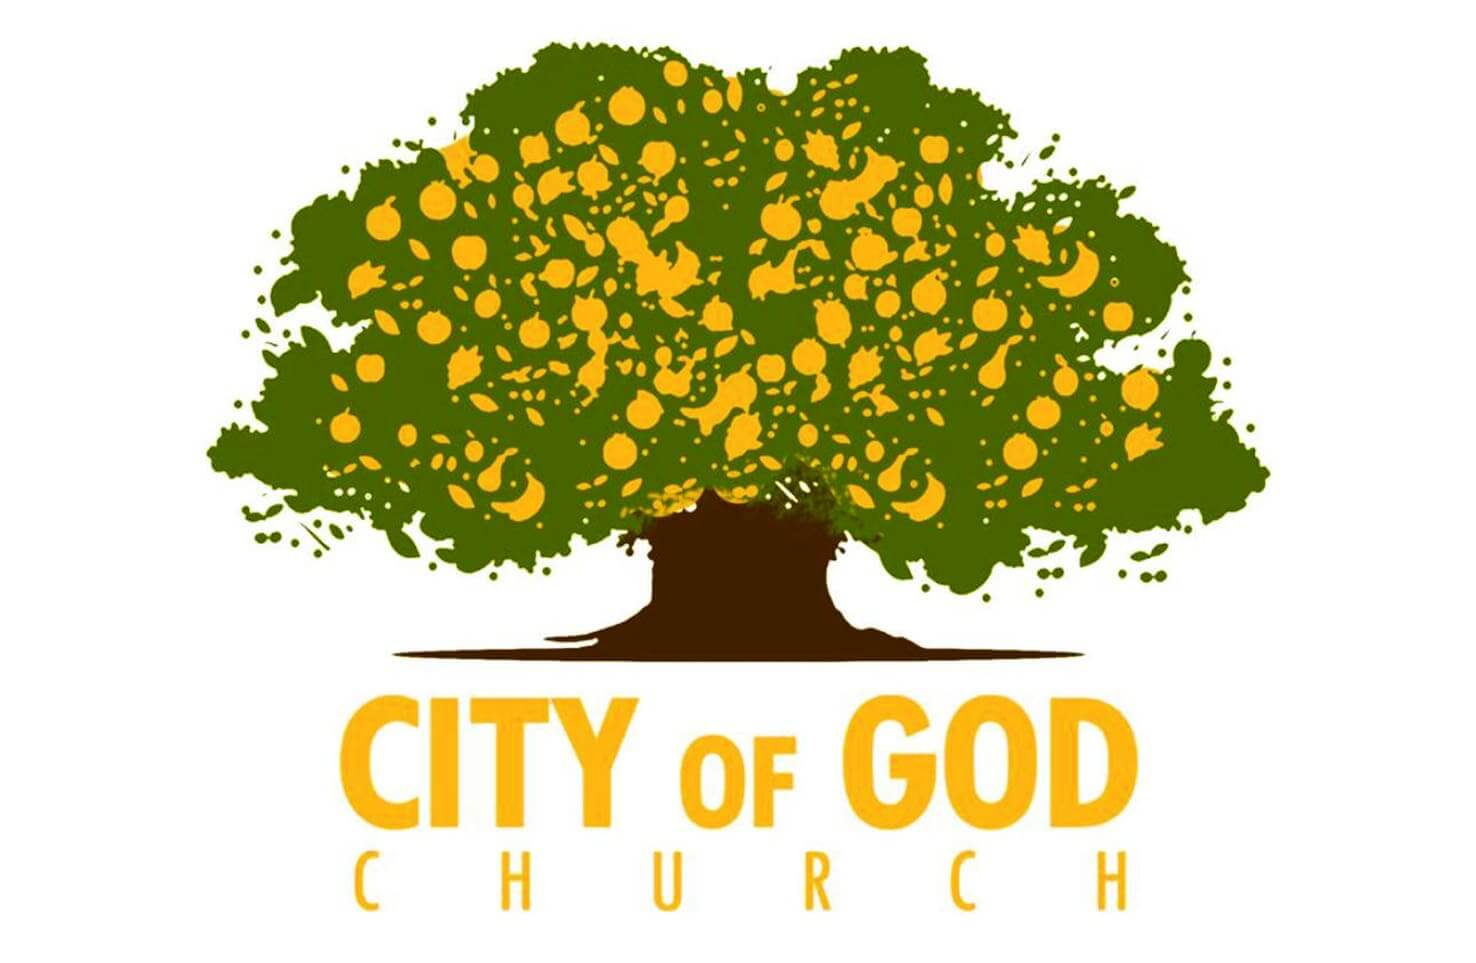 Apostolic-vehicle_City of God2-min